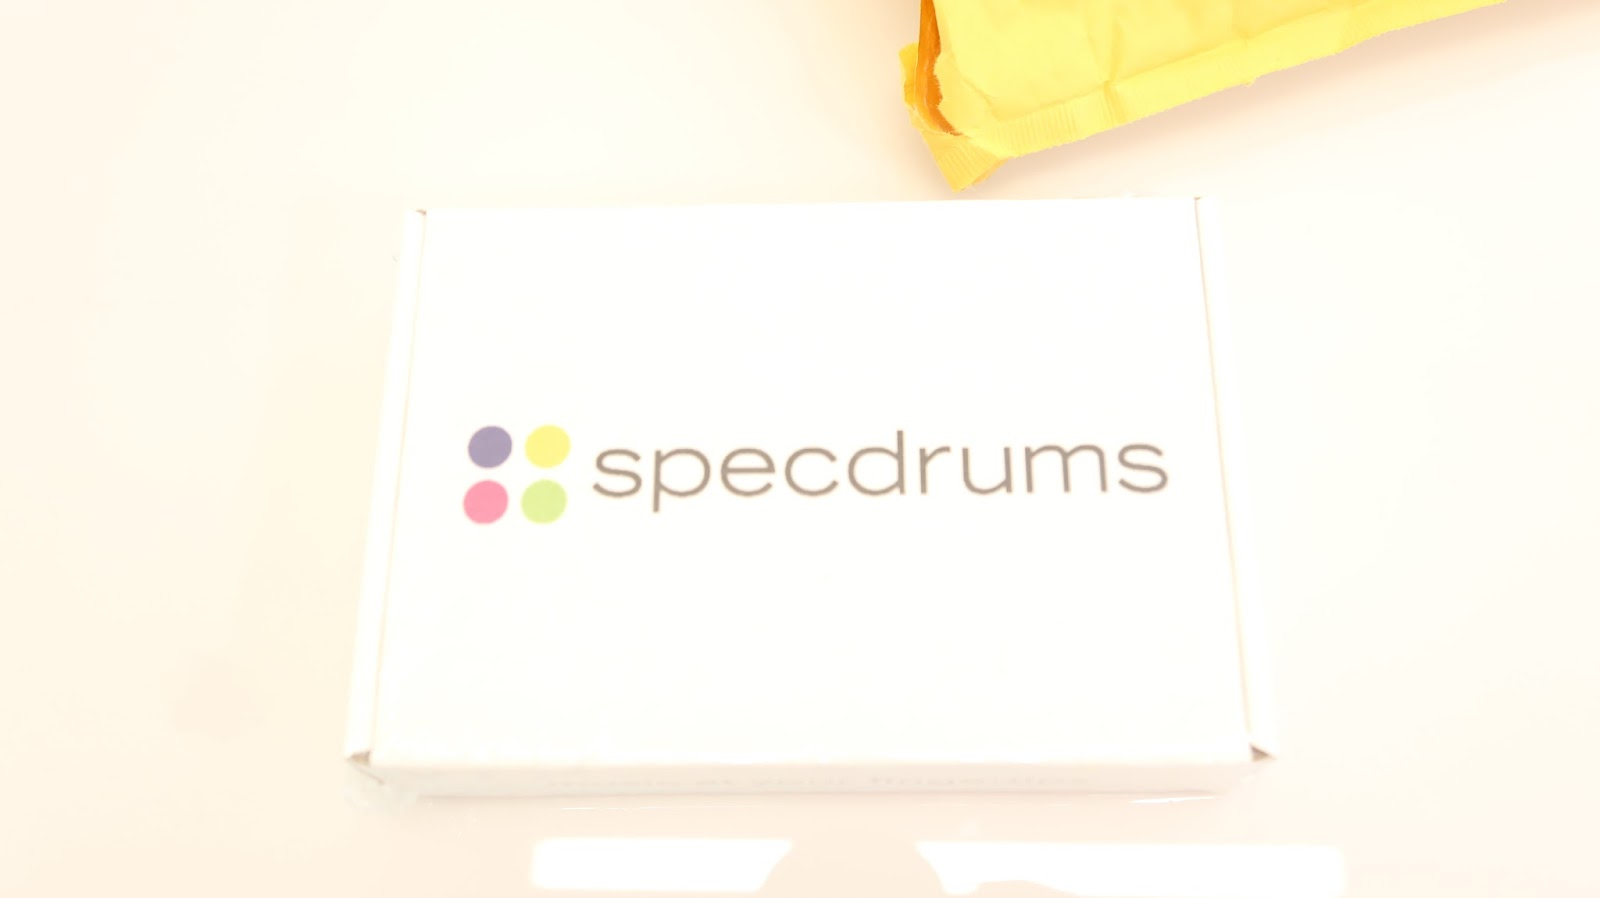 My Camera View: Unboxing Specdrums